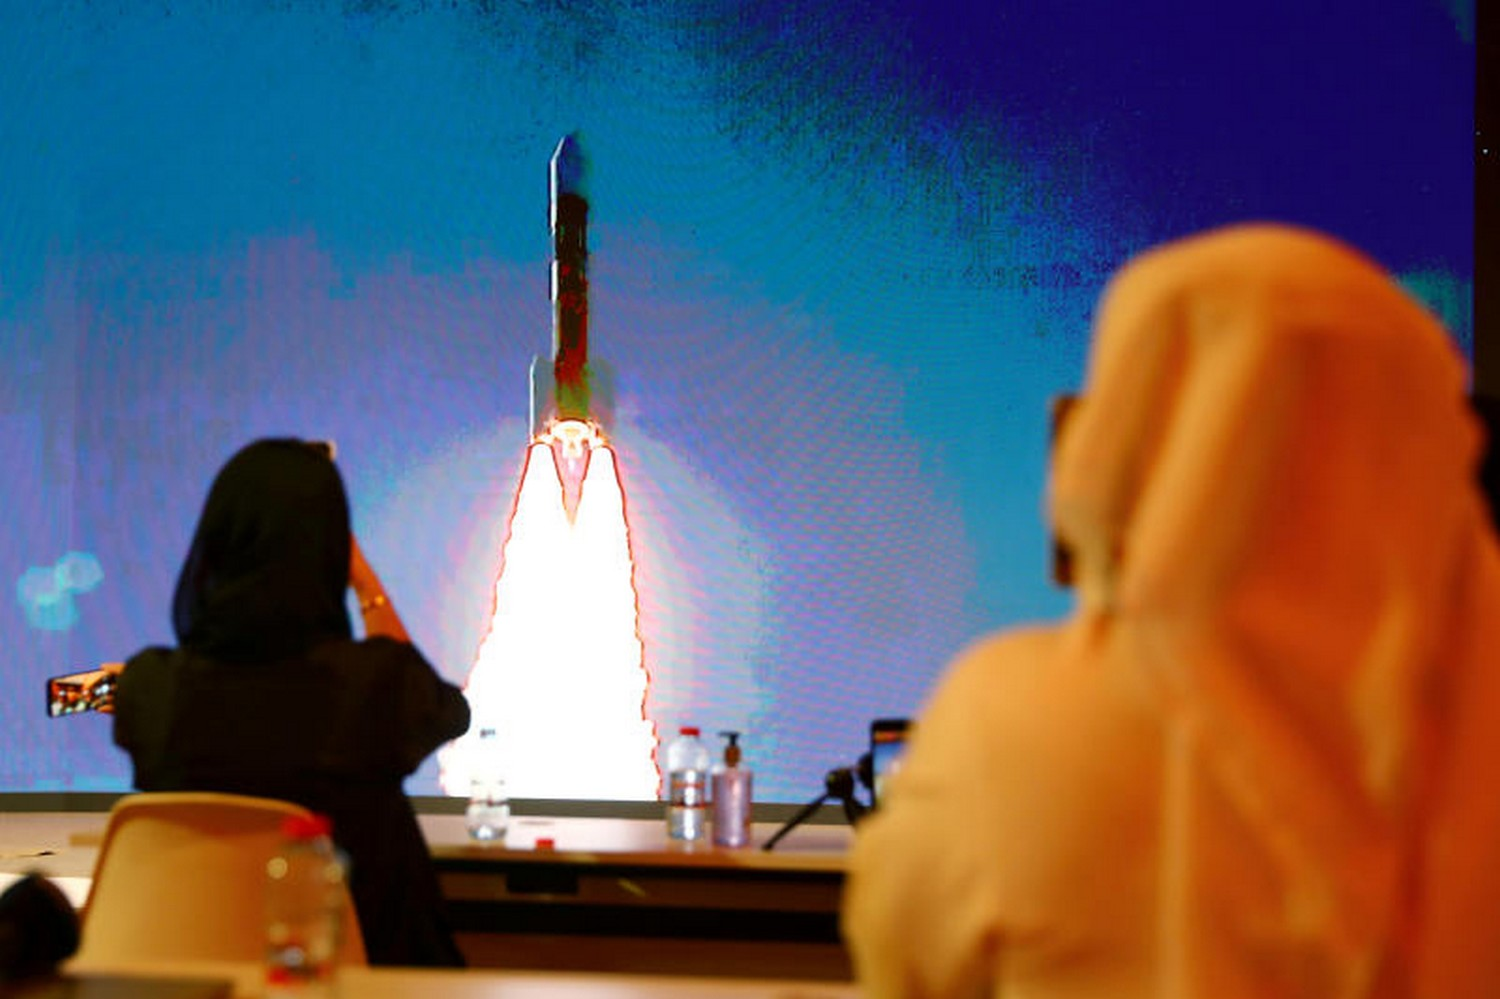 People watch a big screen displaying the launch of the Hope Probe from Tanegashima Island in Japan at the Mohammed bin Rashid Space Centre in Dubai United Arab Emirates on July 20